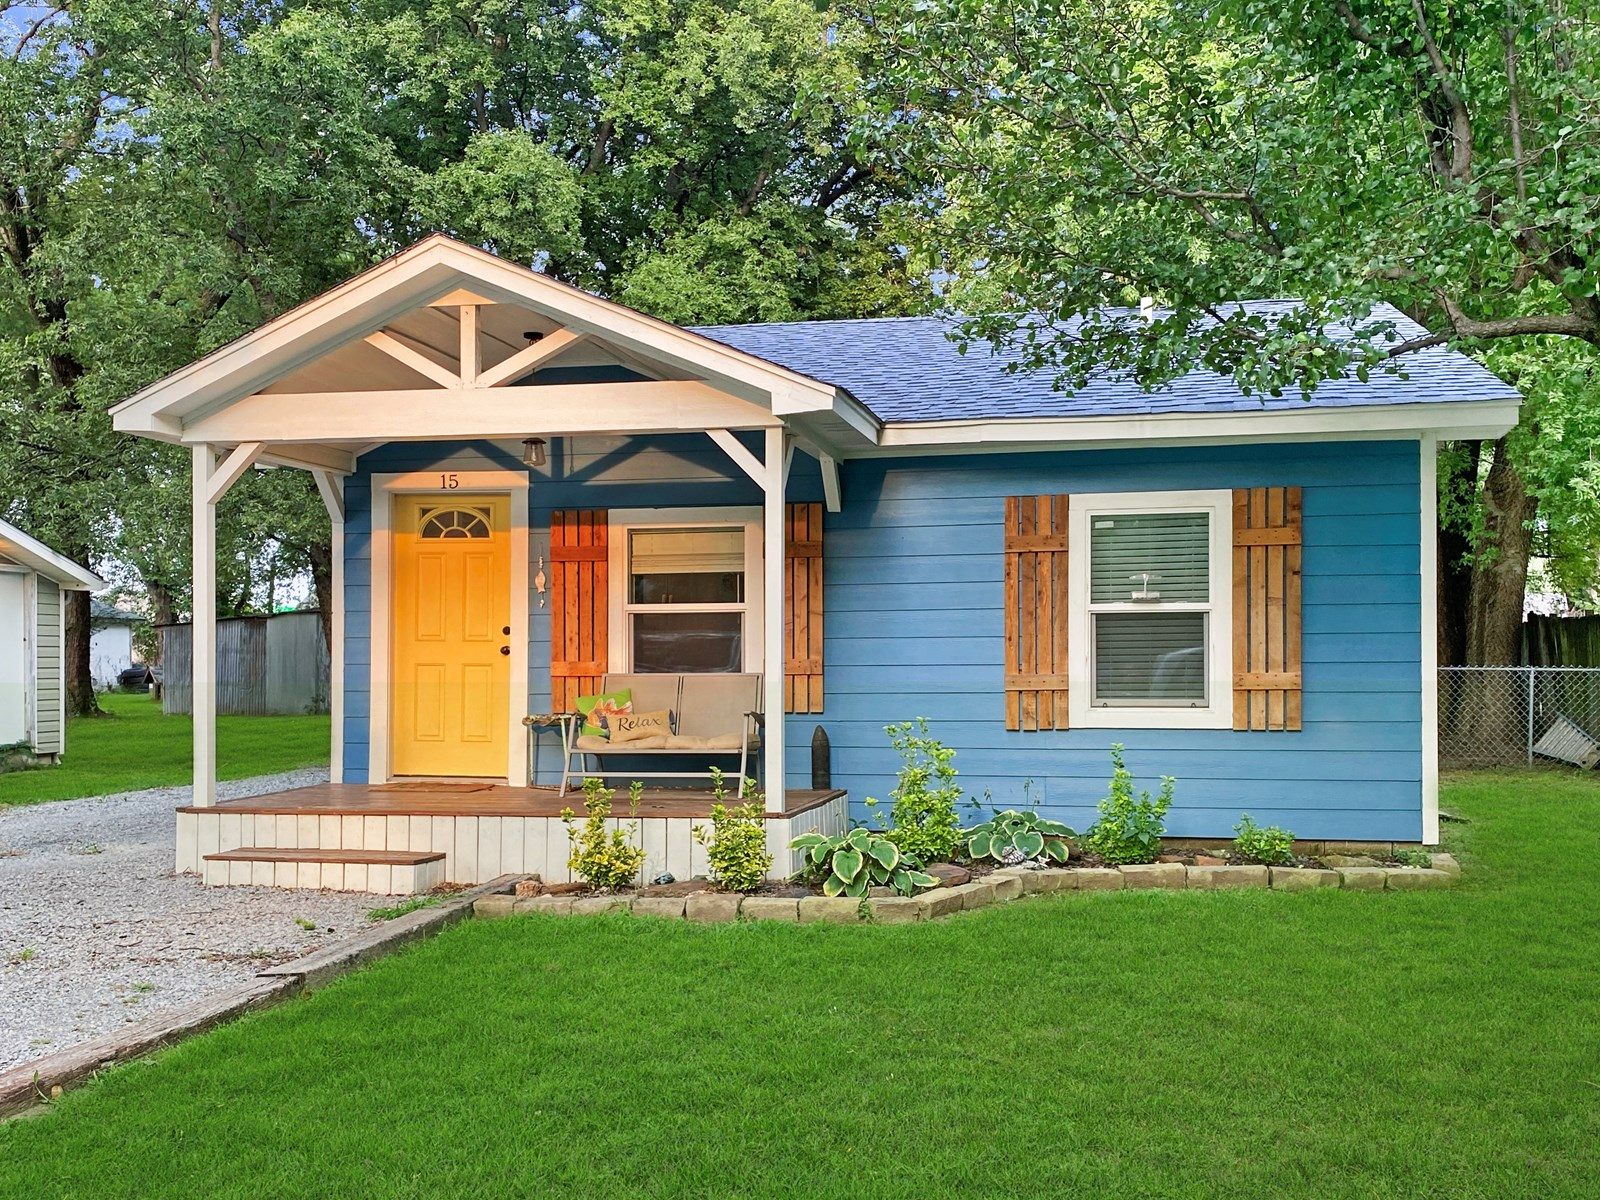 Home in Town For Sale in Pryor, Oklahoma